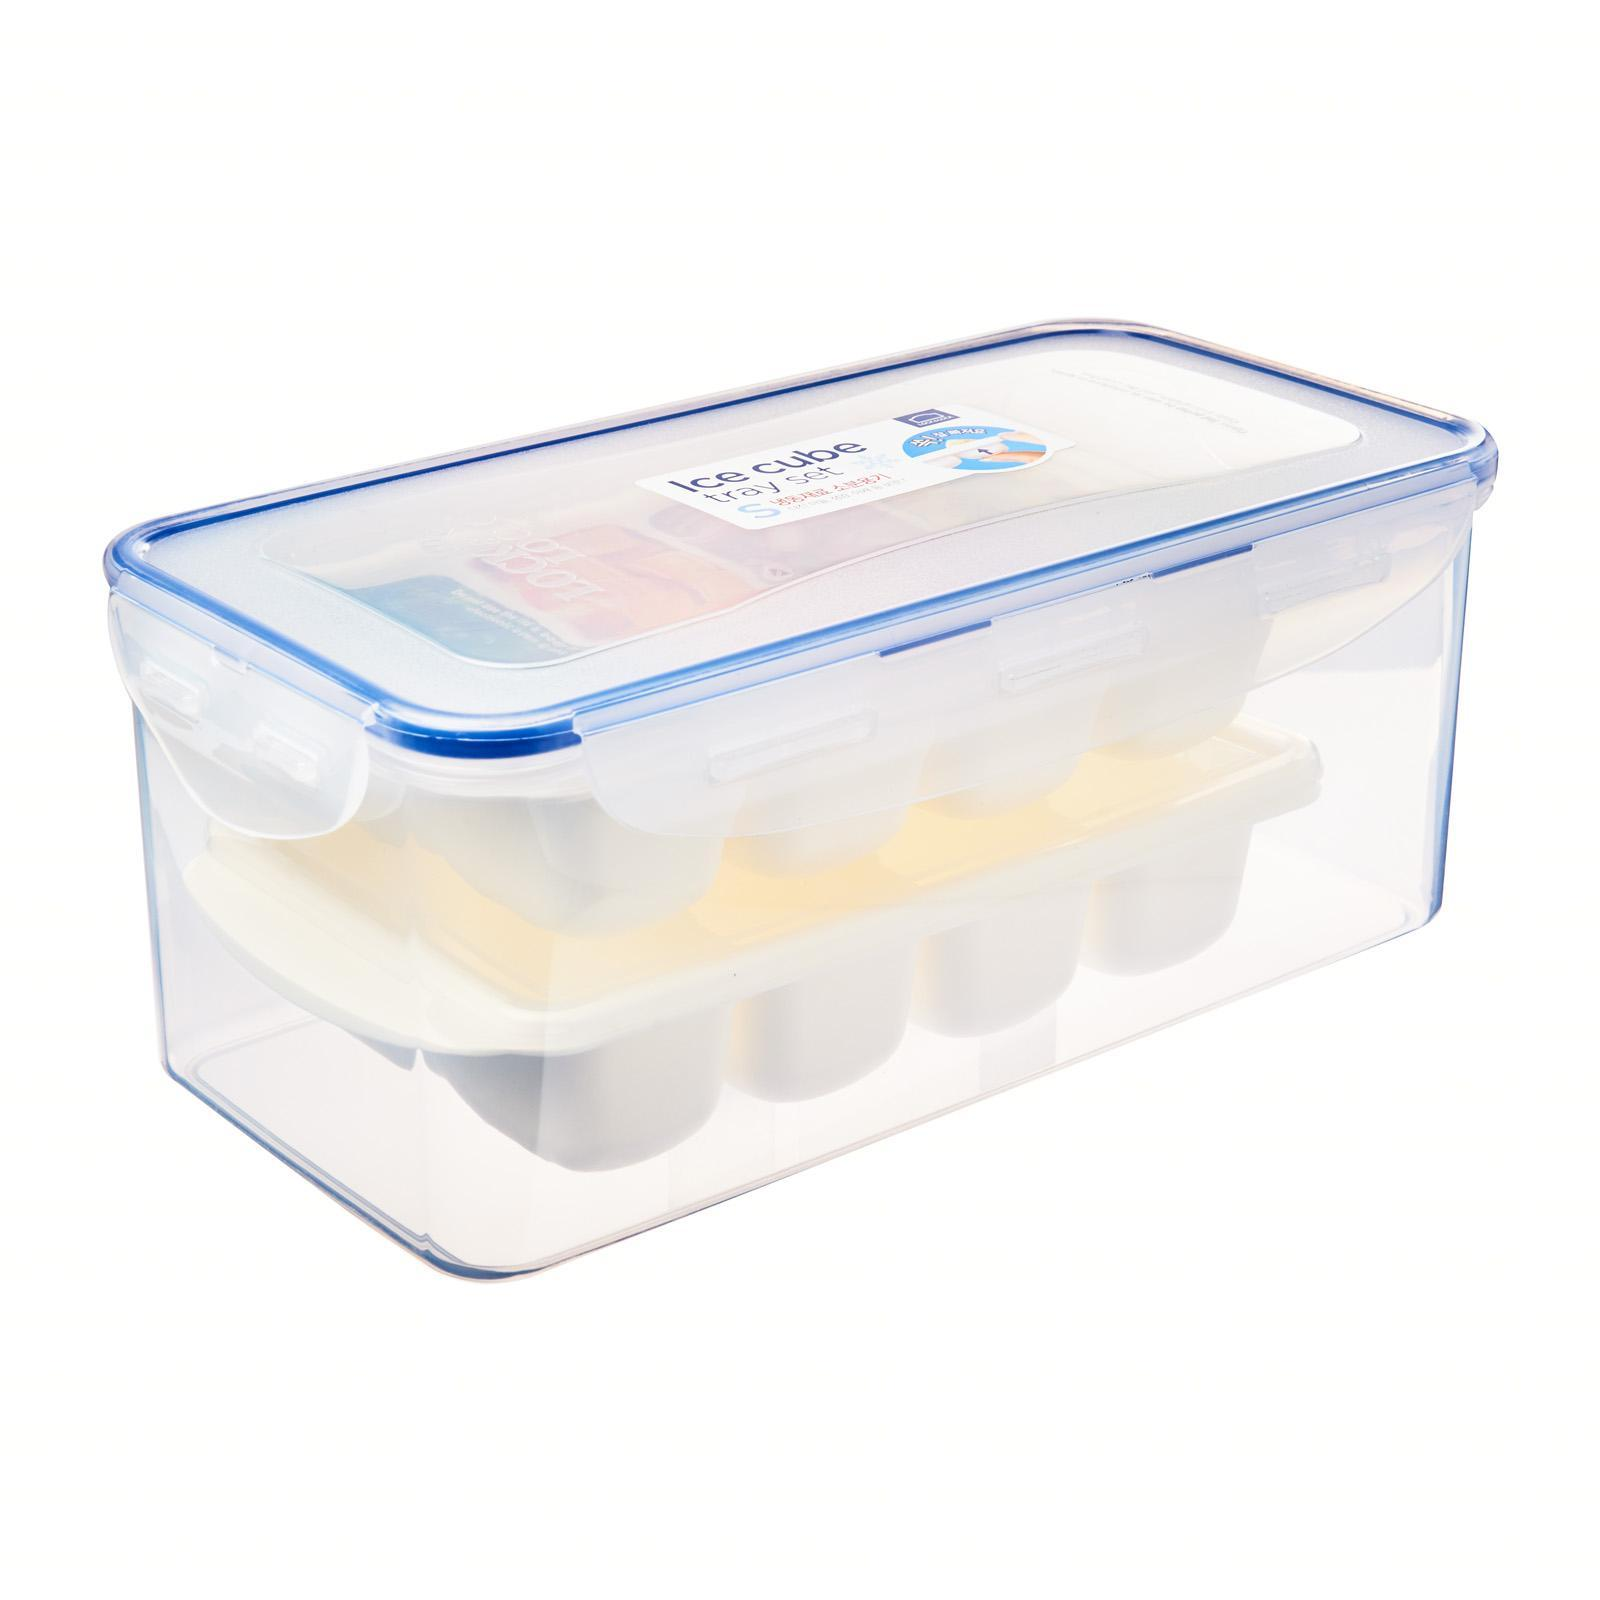 Lock and Lock Ice Cube Tray Set L (2 X Ice Cube Tray L + 3.4L Container)